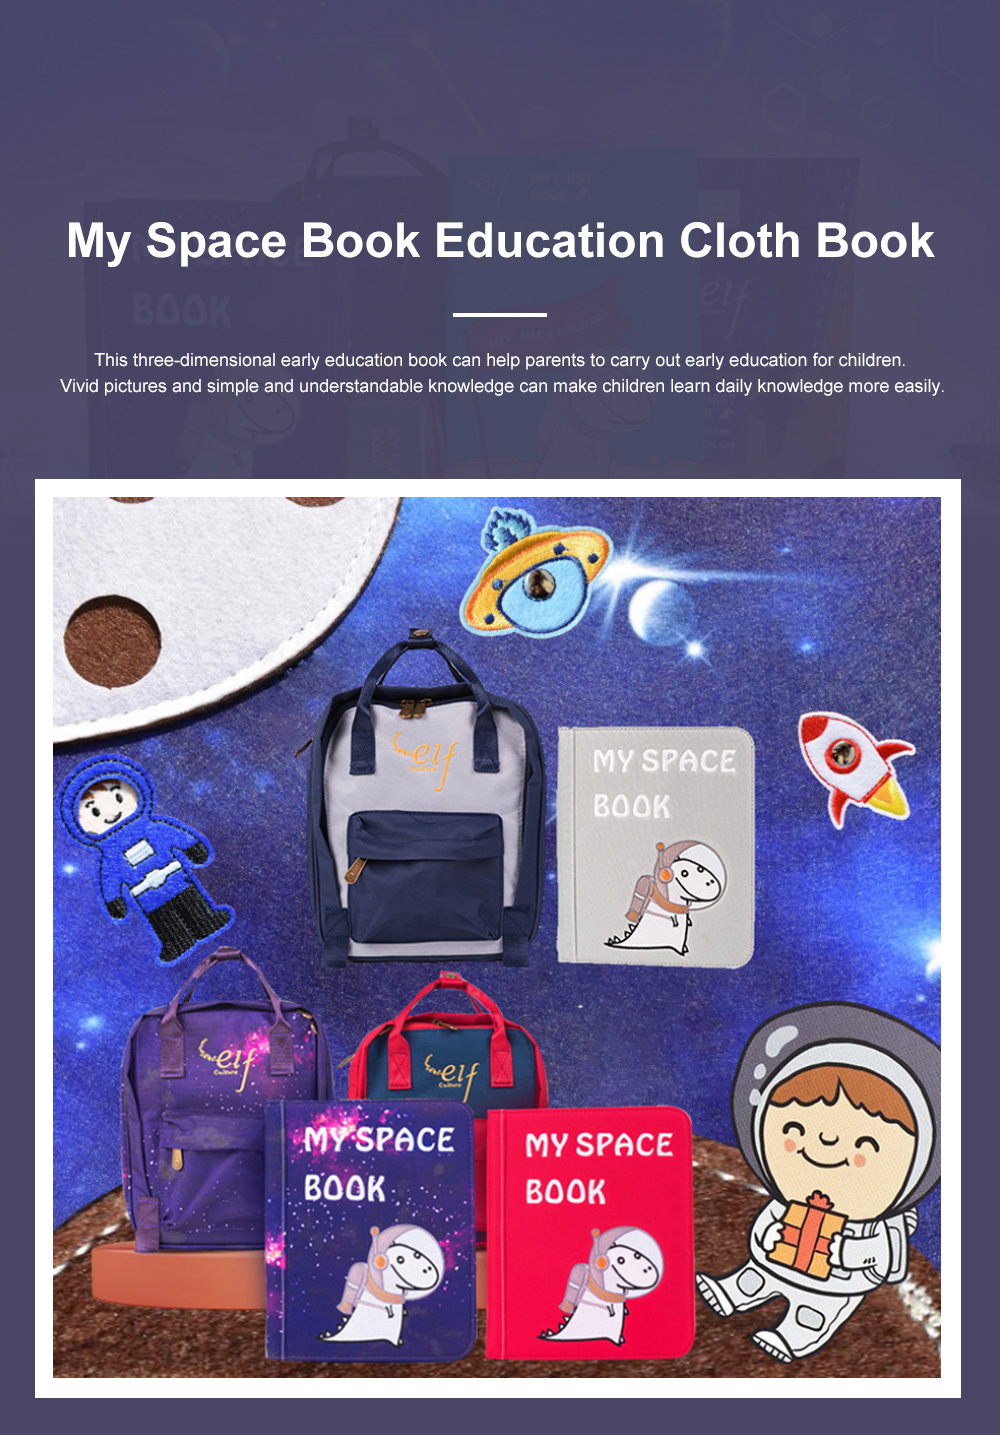 MY FIRST BOOK Space Book Limited Edition Children's Early Education Book Three-dimensional Cloth Book 0